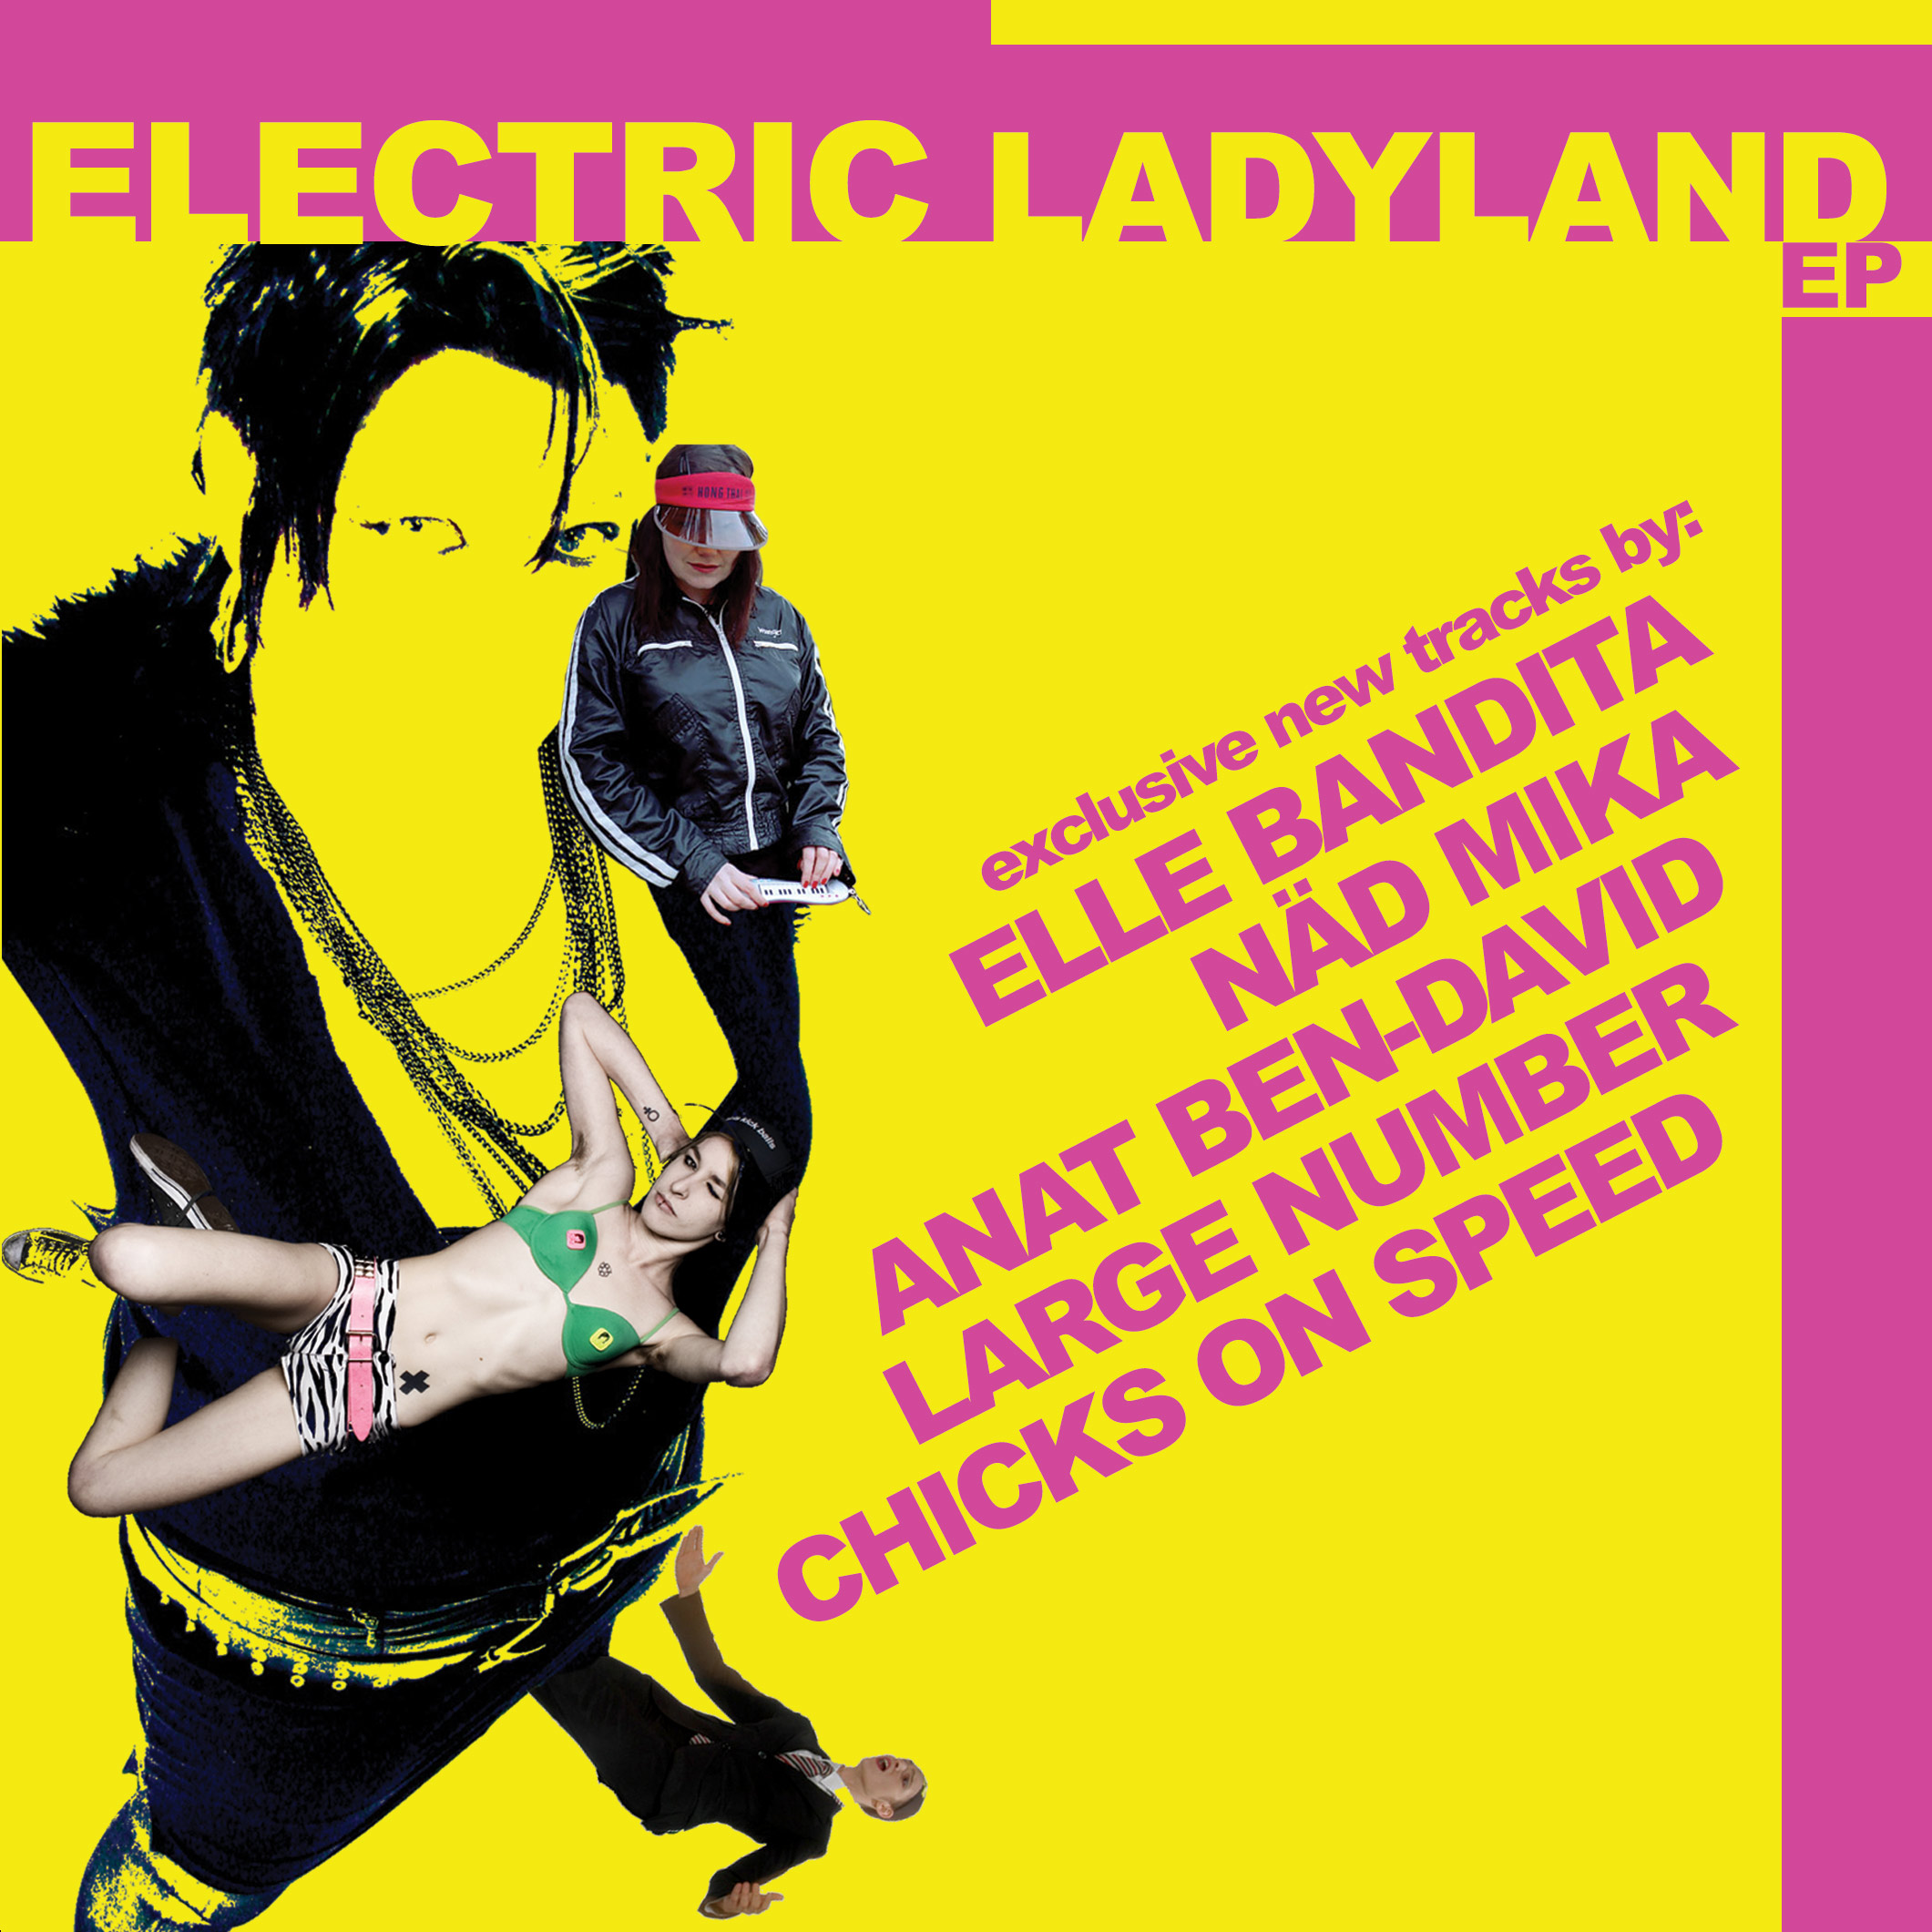 Electric Ladyland EP